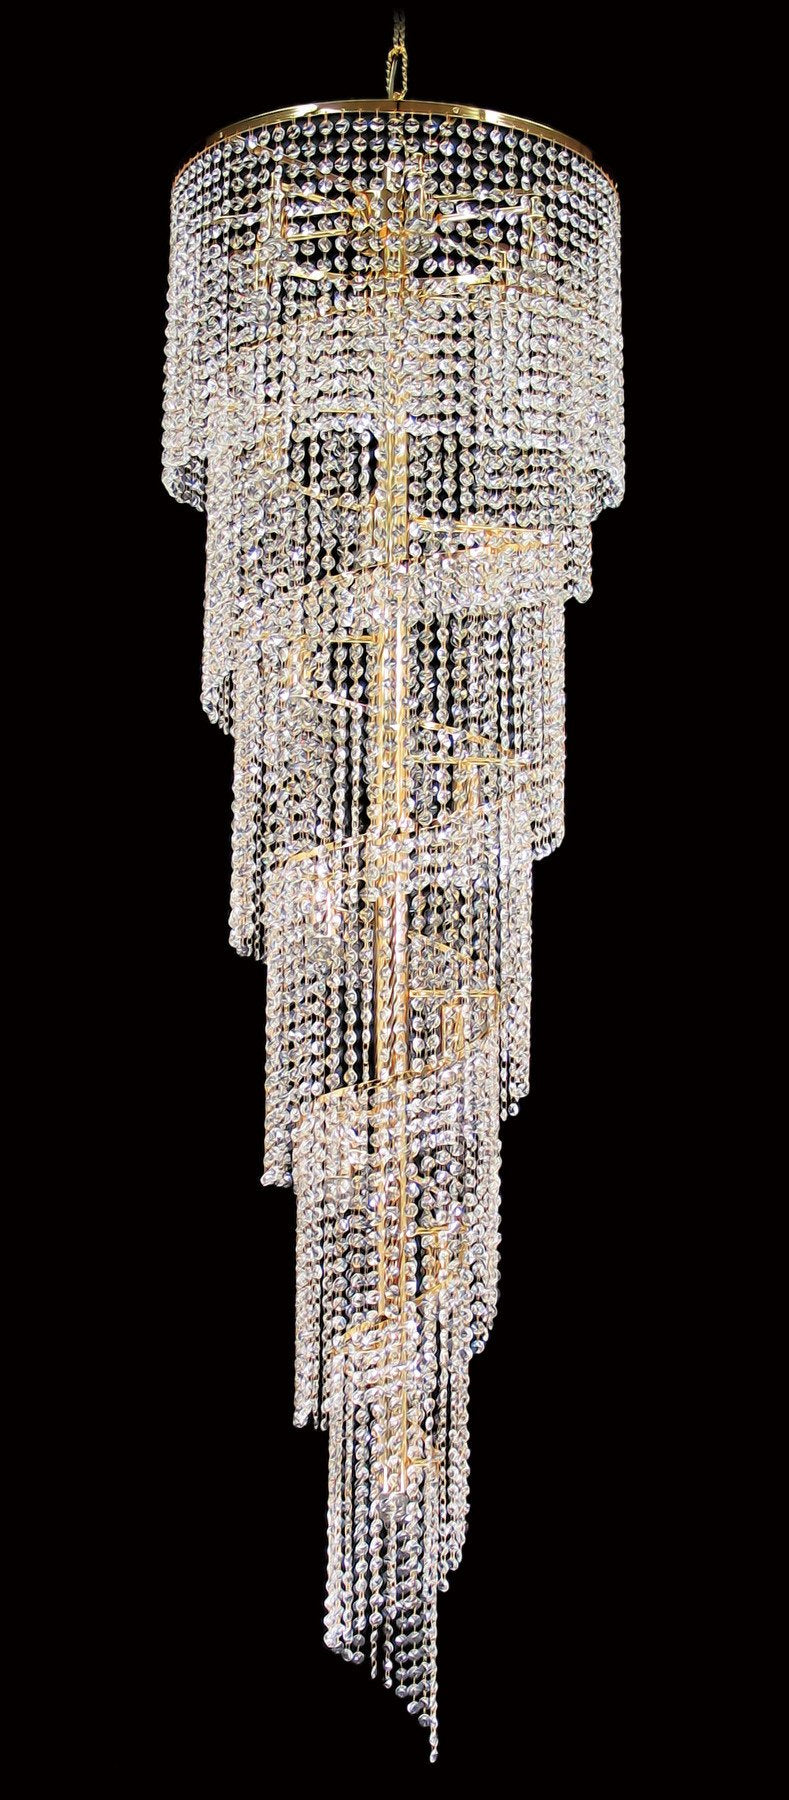 "701 Crystal Pendant Light - 20"" 17 Lights - Asfour Crystal 14mm Beads - Chandelier [701-20""-14mm]"